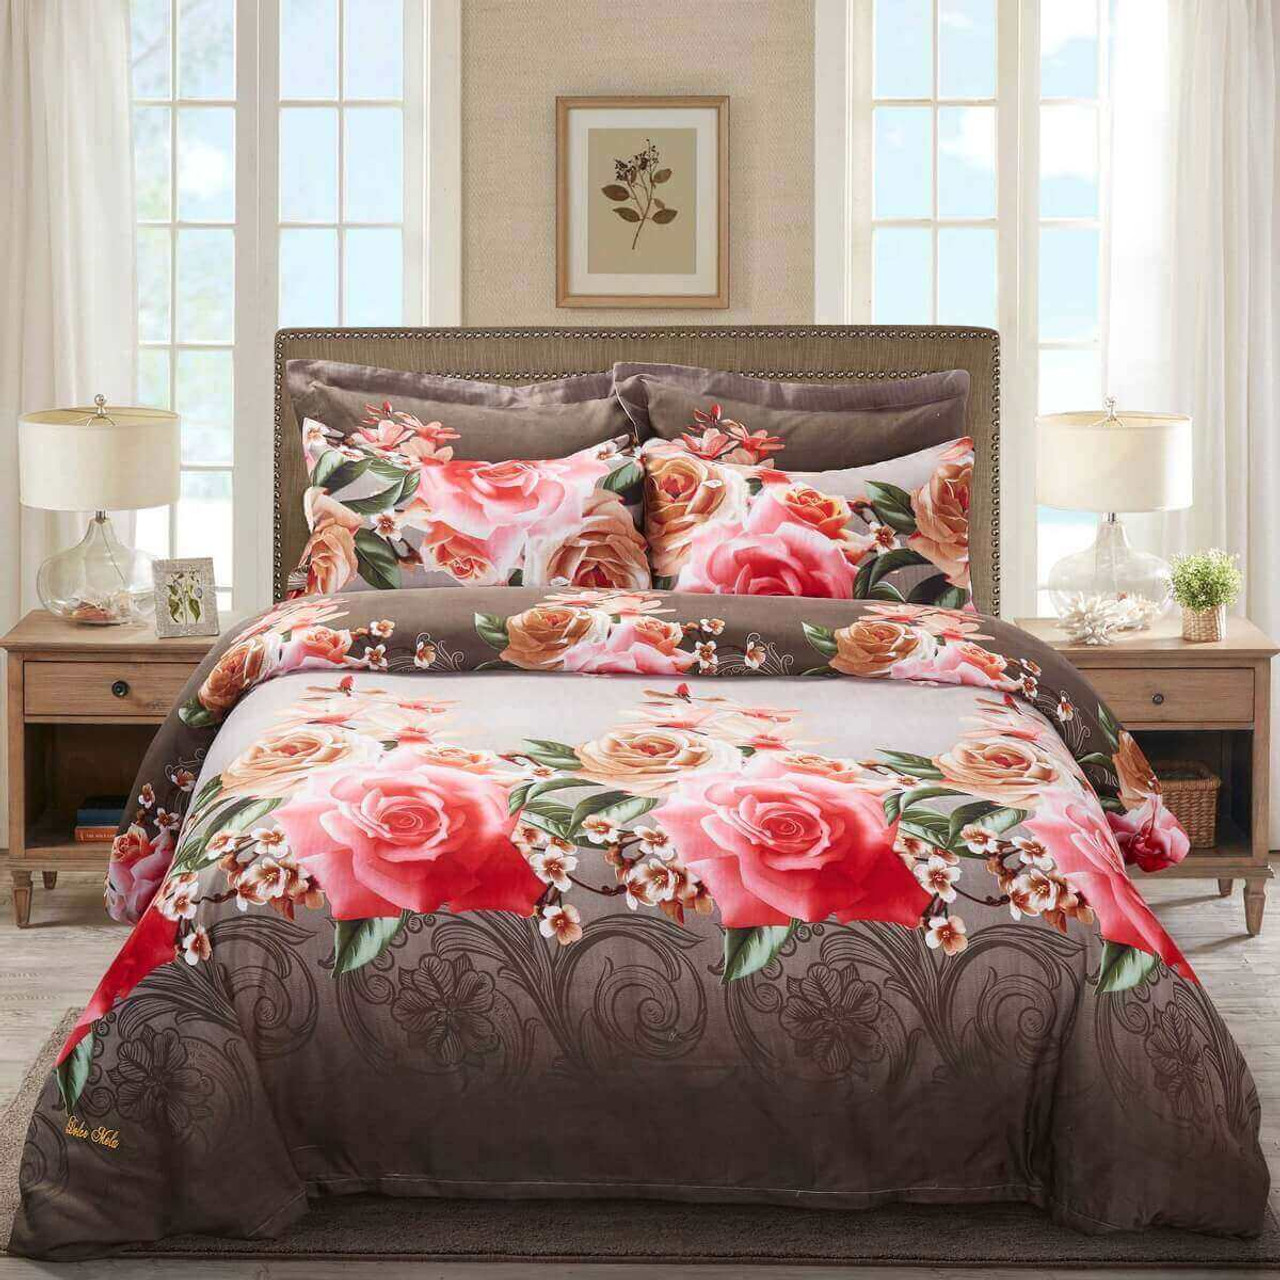 DM708K Duvet Cover Set - Dolce-Mela Bedding